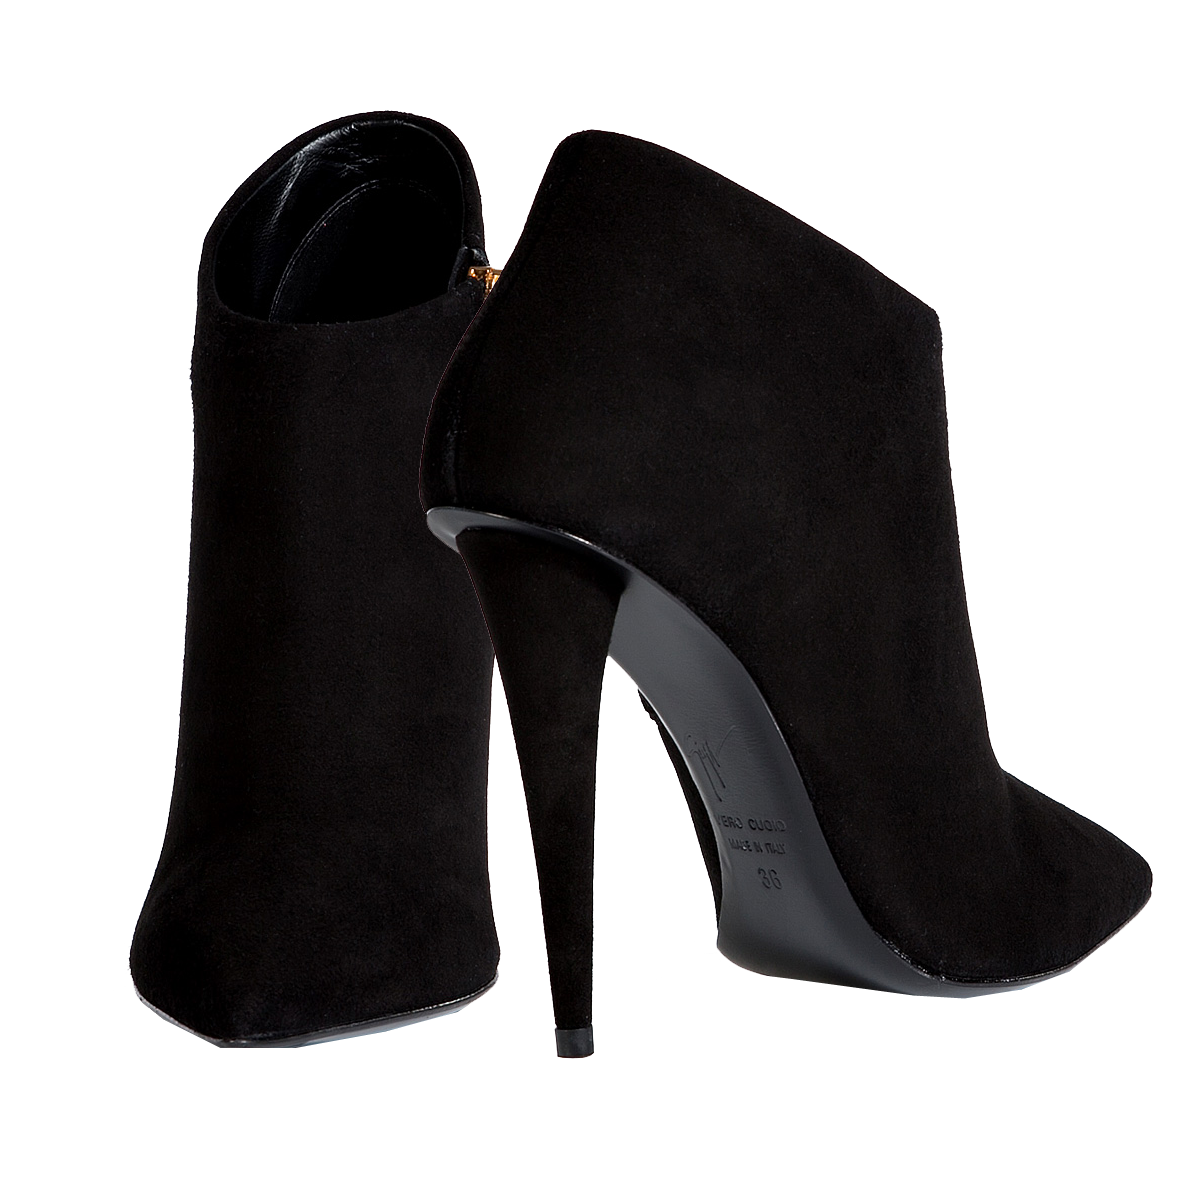 giuseppe zanotti black suede pointed toe ankle boots my